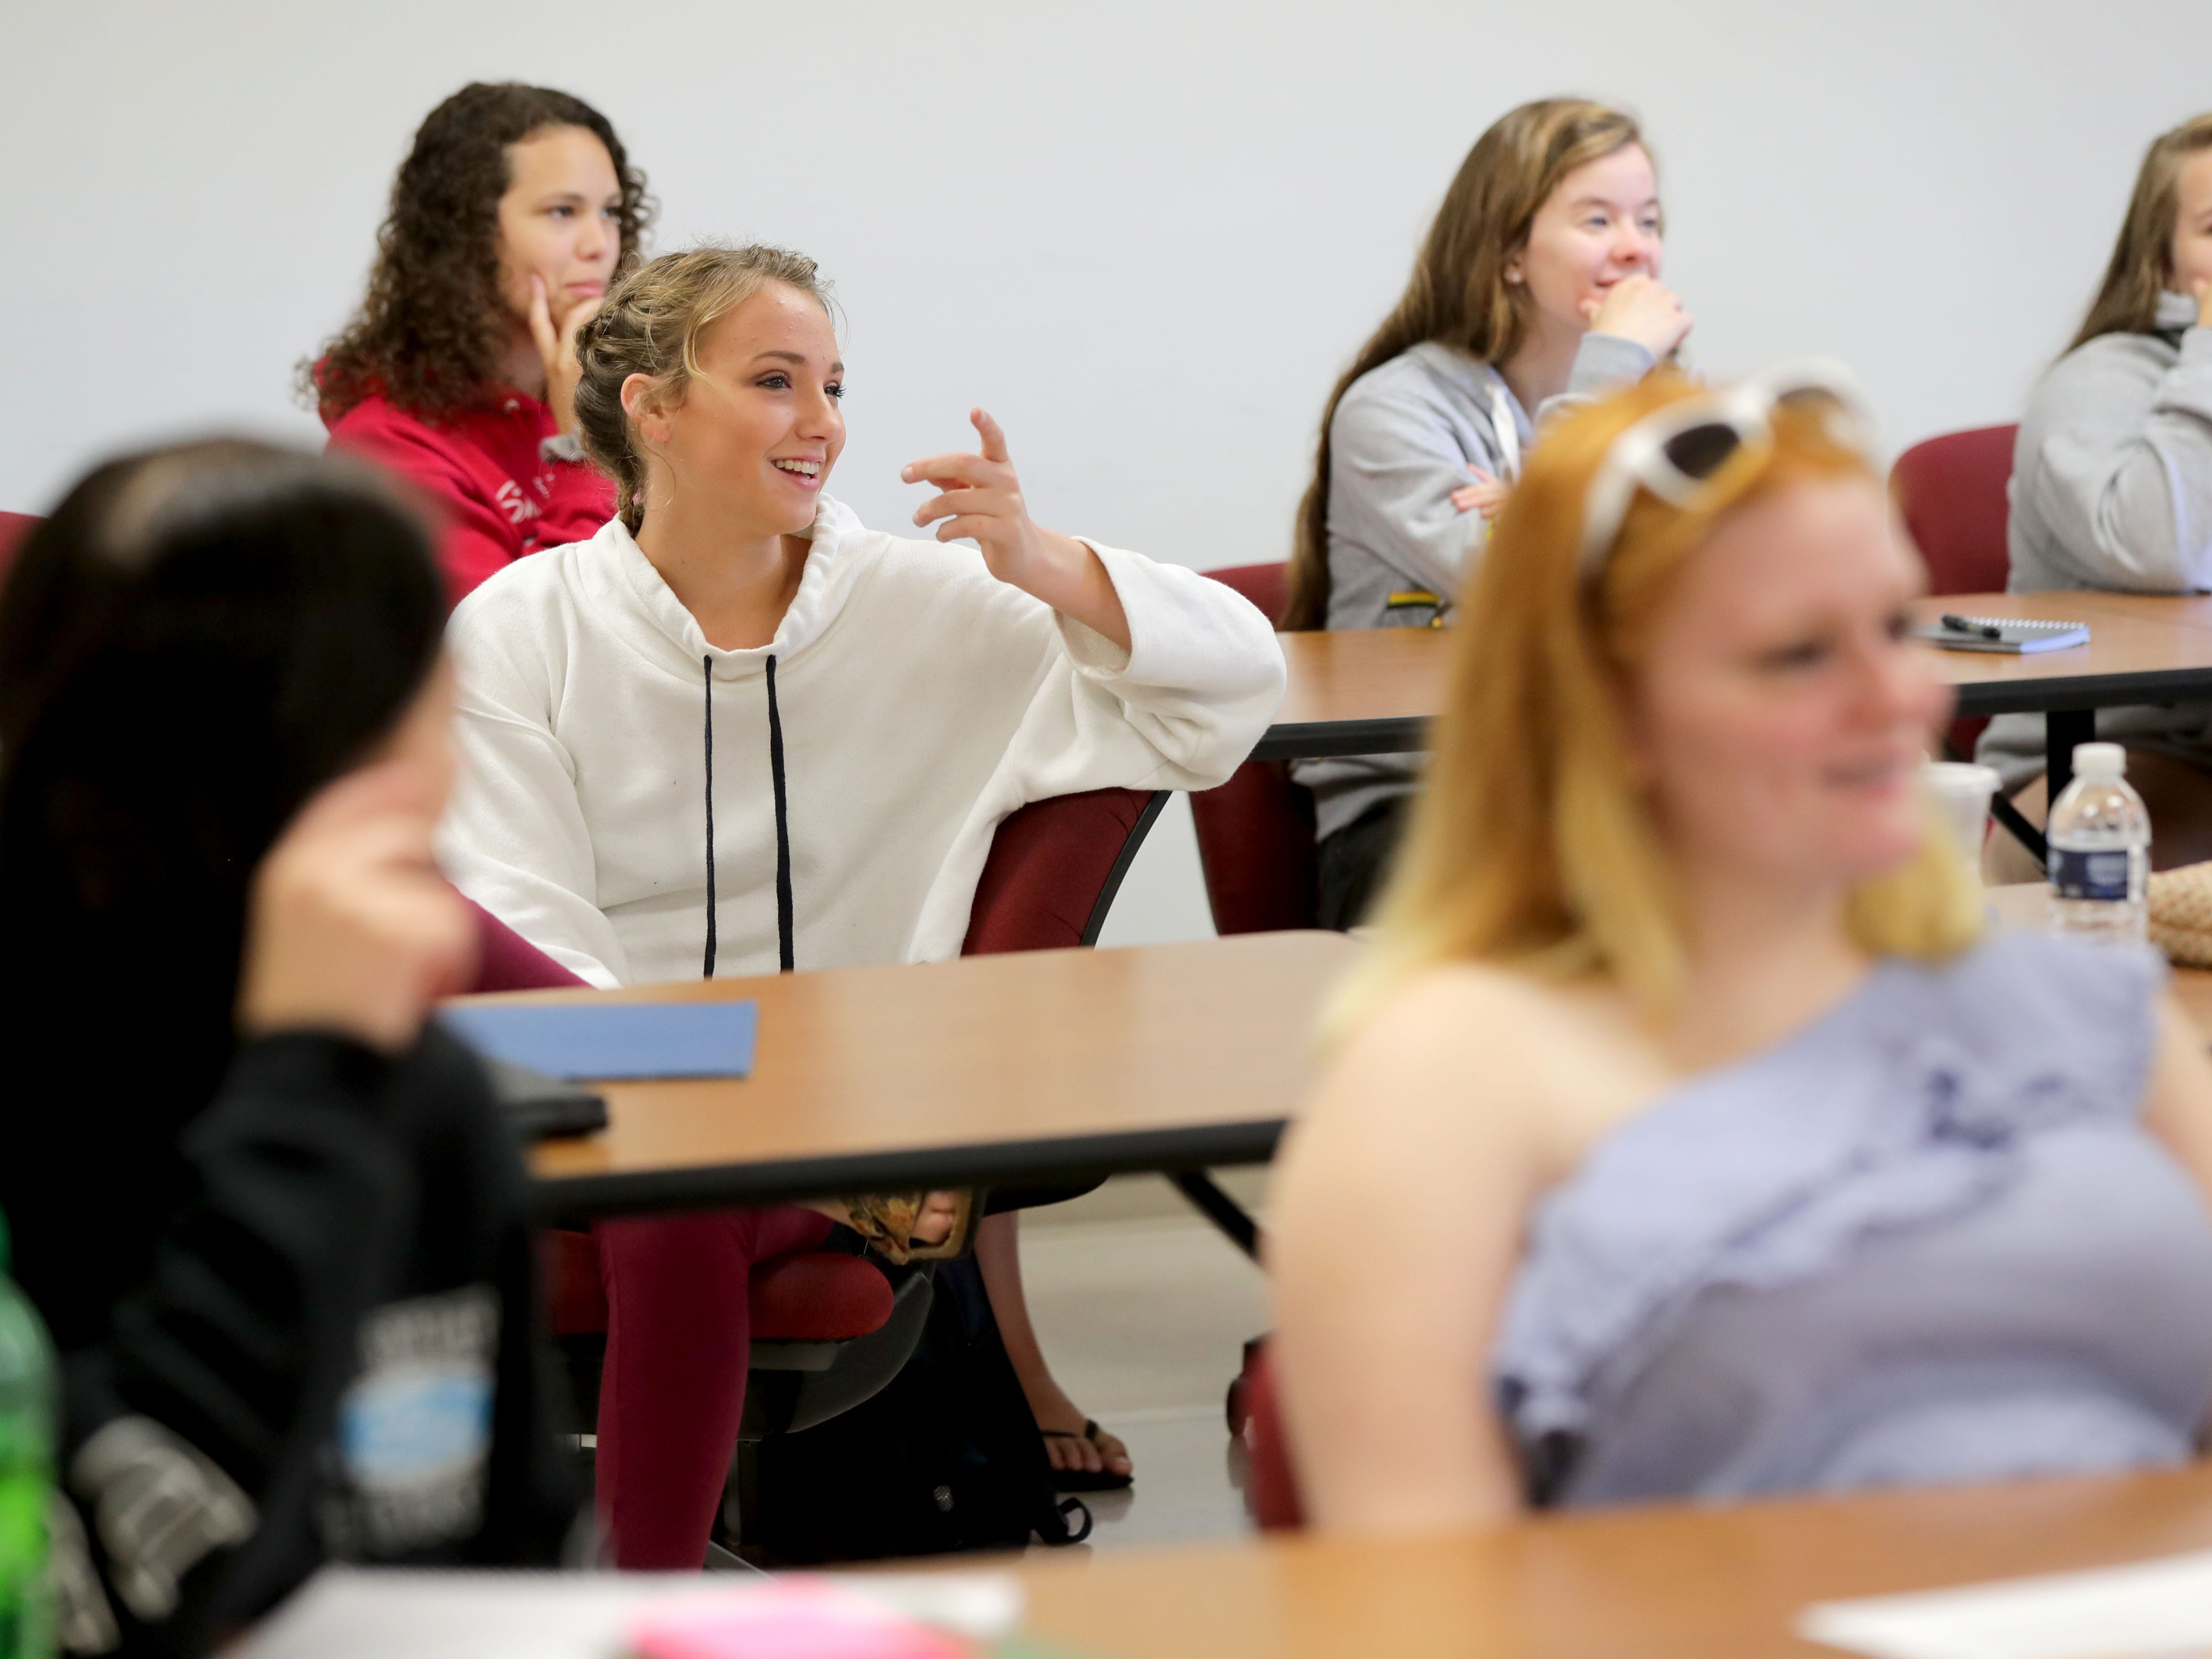 Emily Mihm (center), a University of Wisconsin-Green Bay, Sheboygan Campus freshman from Sheboygan,  answers a question in an academic reading class.